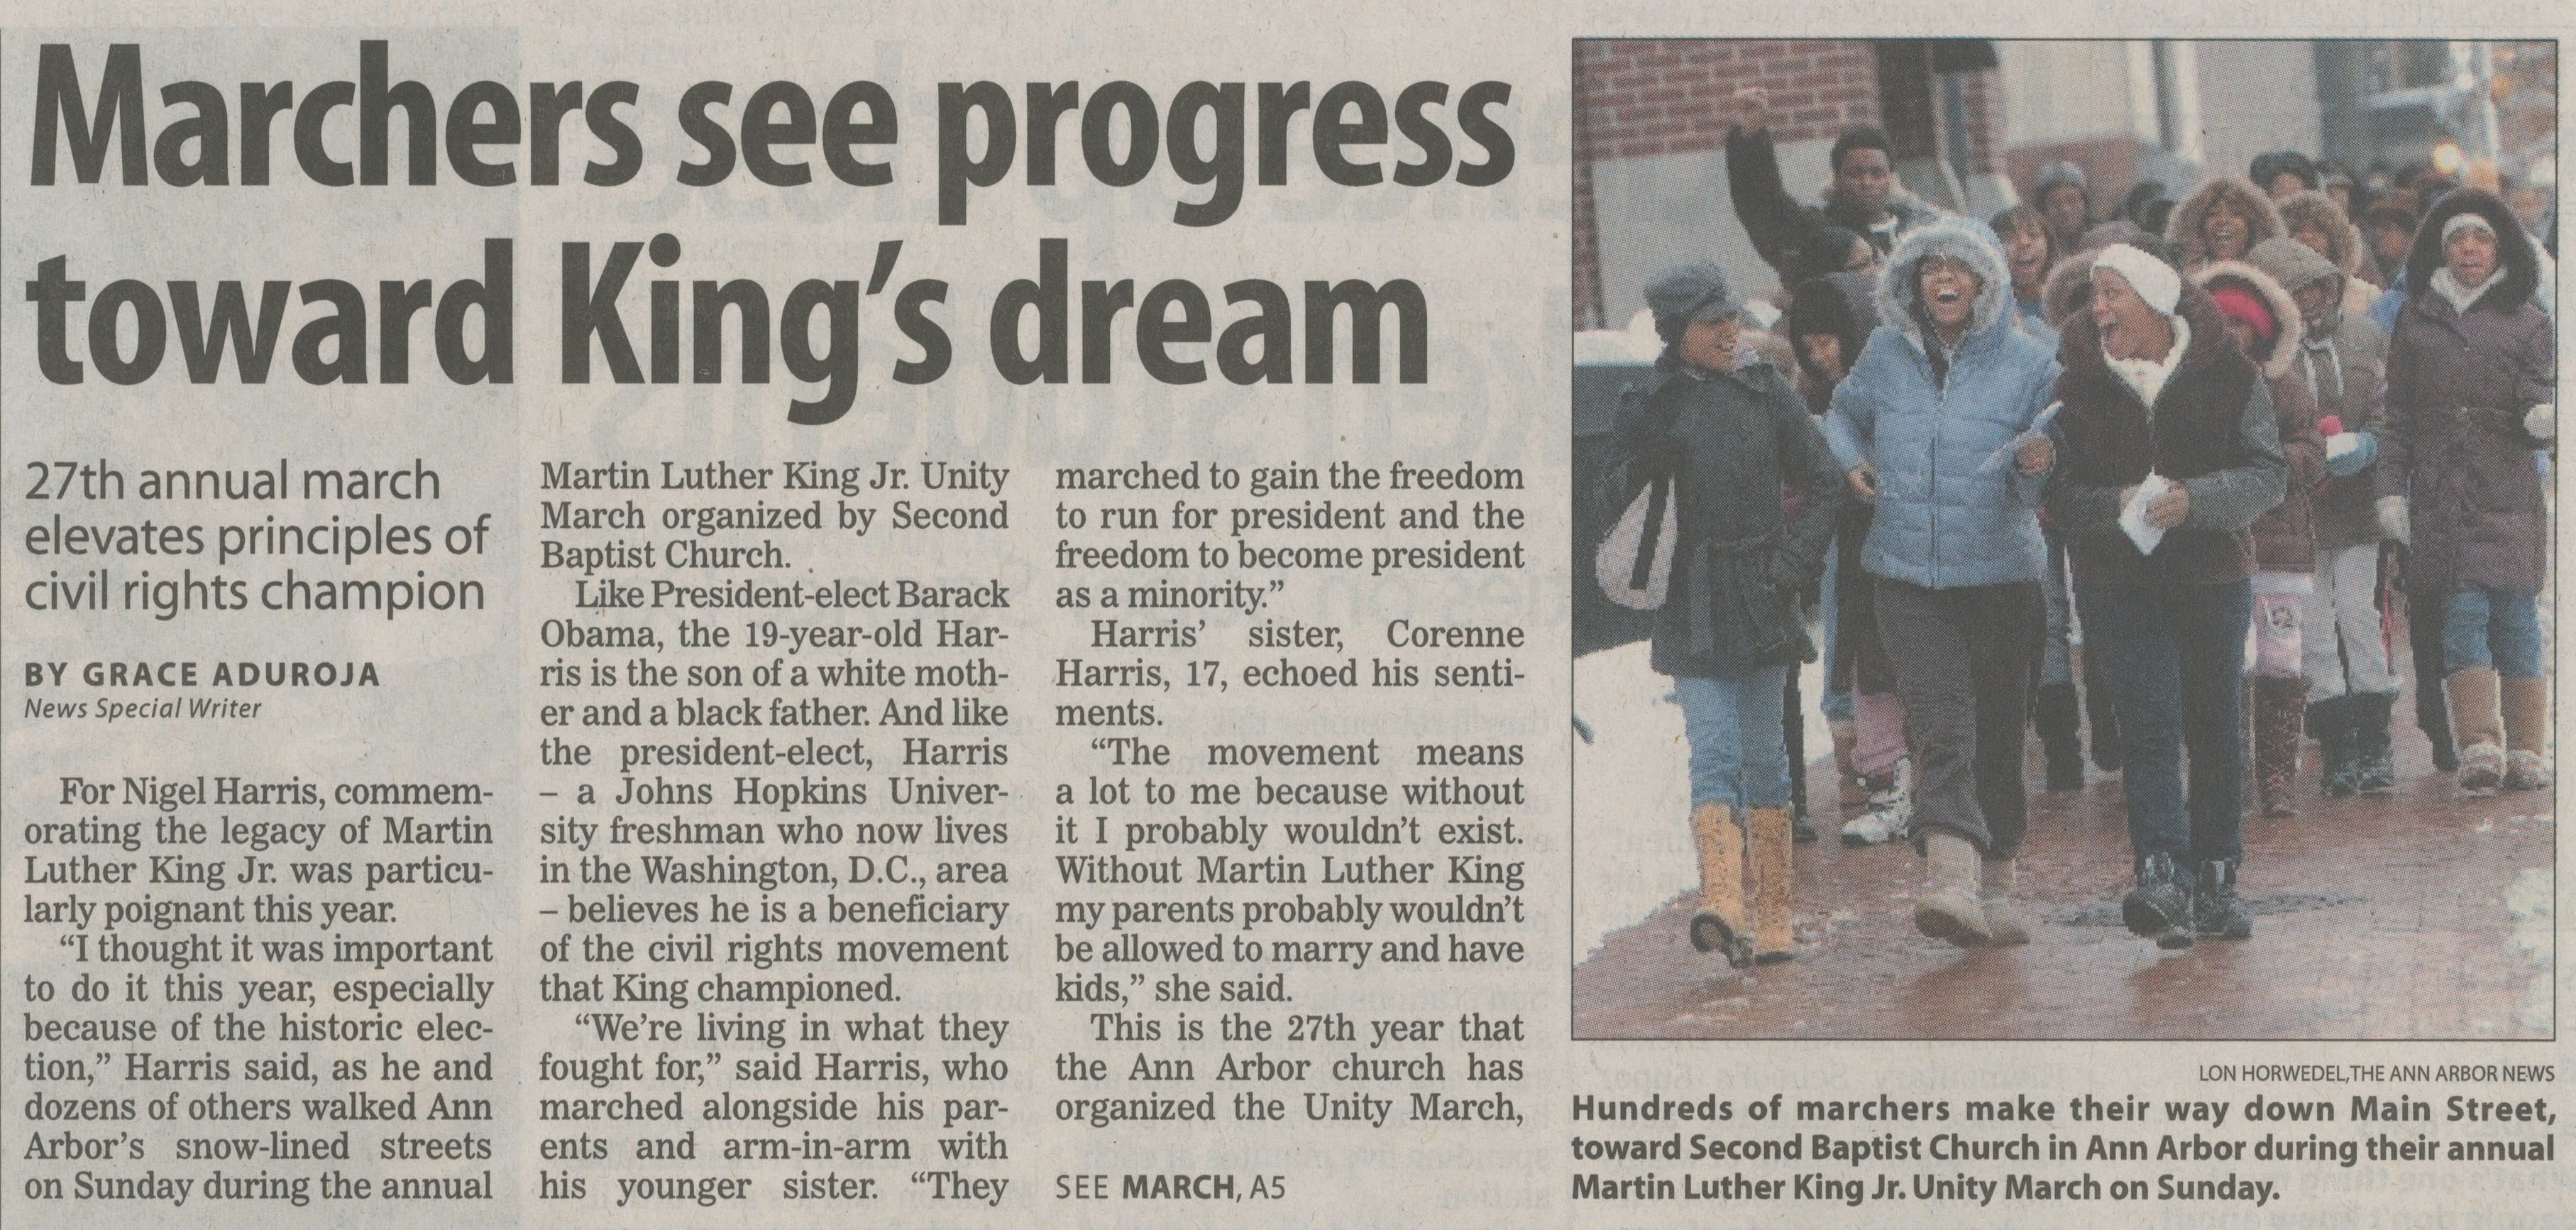 Marchers See Progress Toward King's Dream image